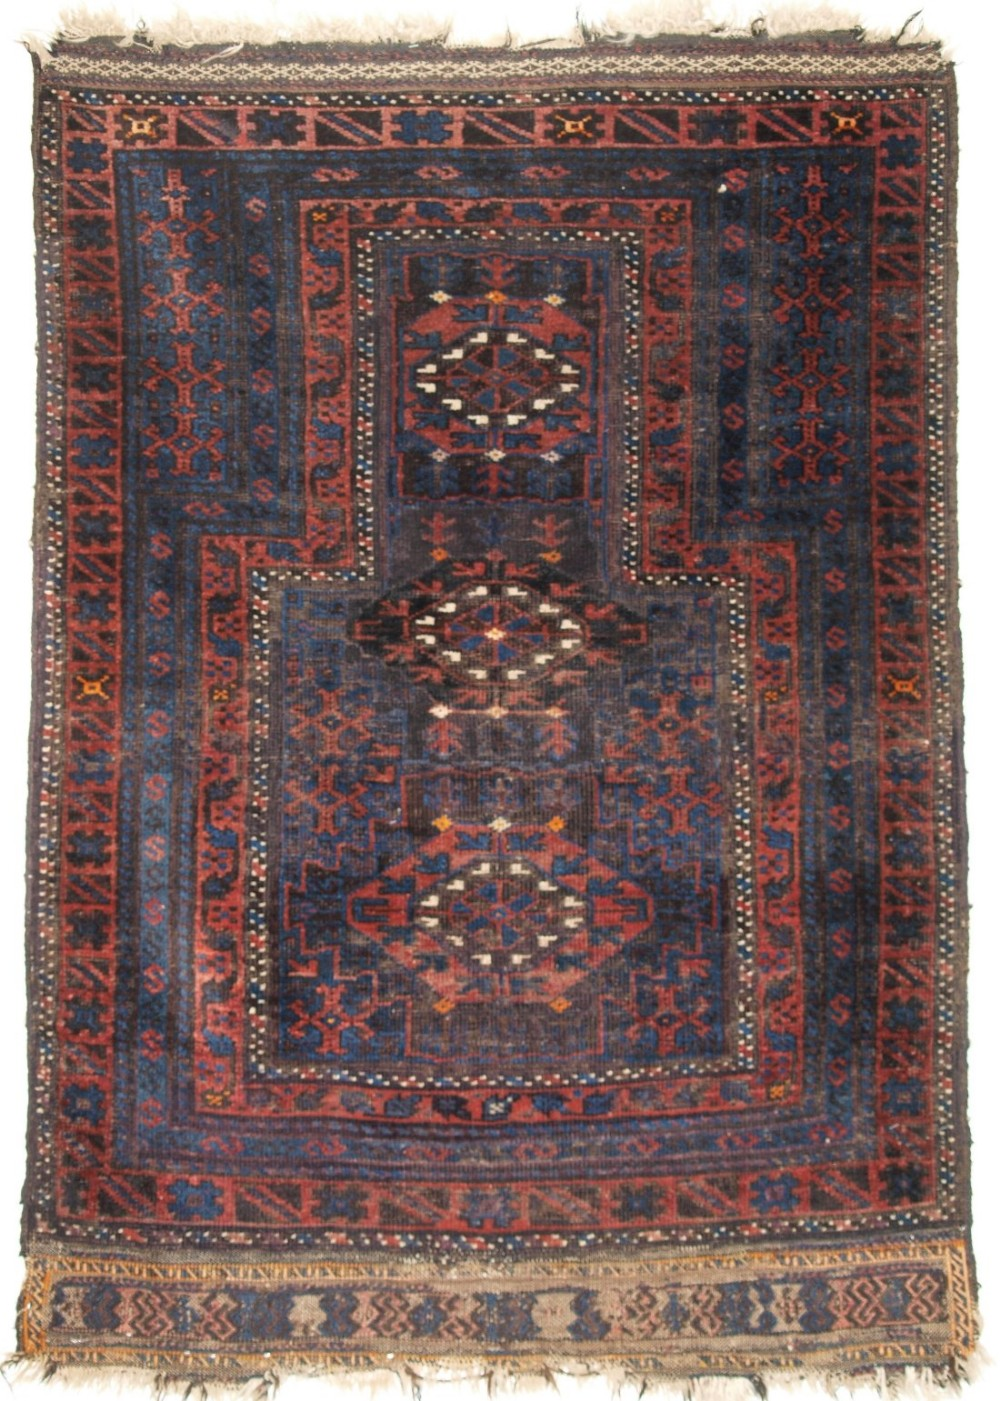 antique timuri baluch prayer rug blue ground late 19th century